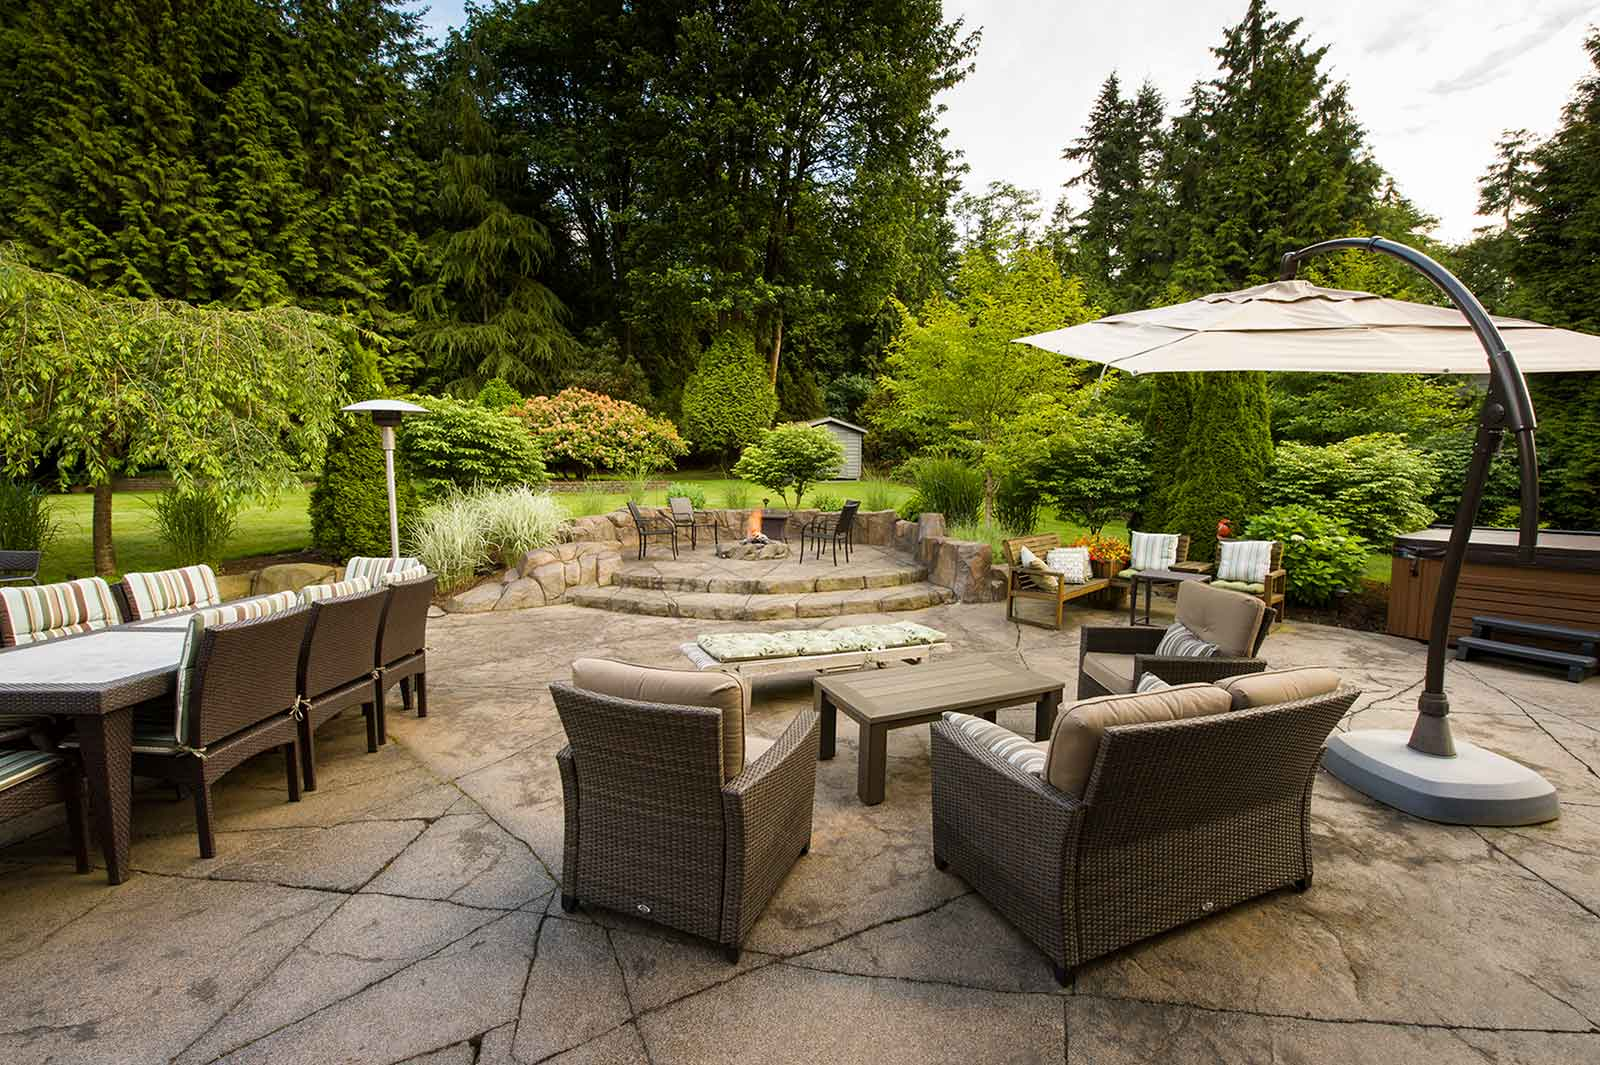 Backyard seating area for relaxing and entertaining